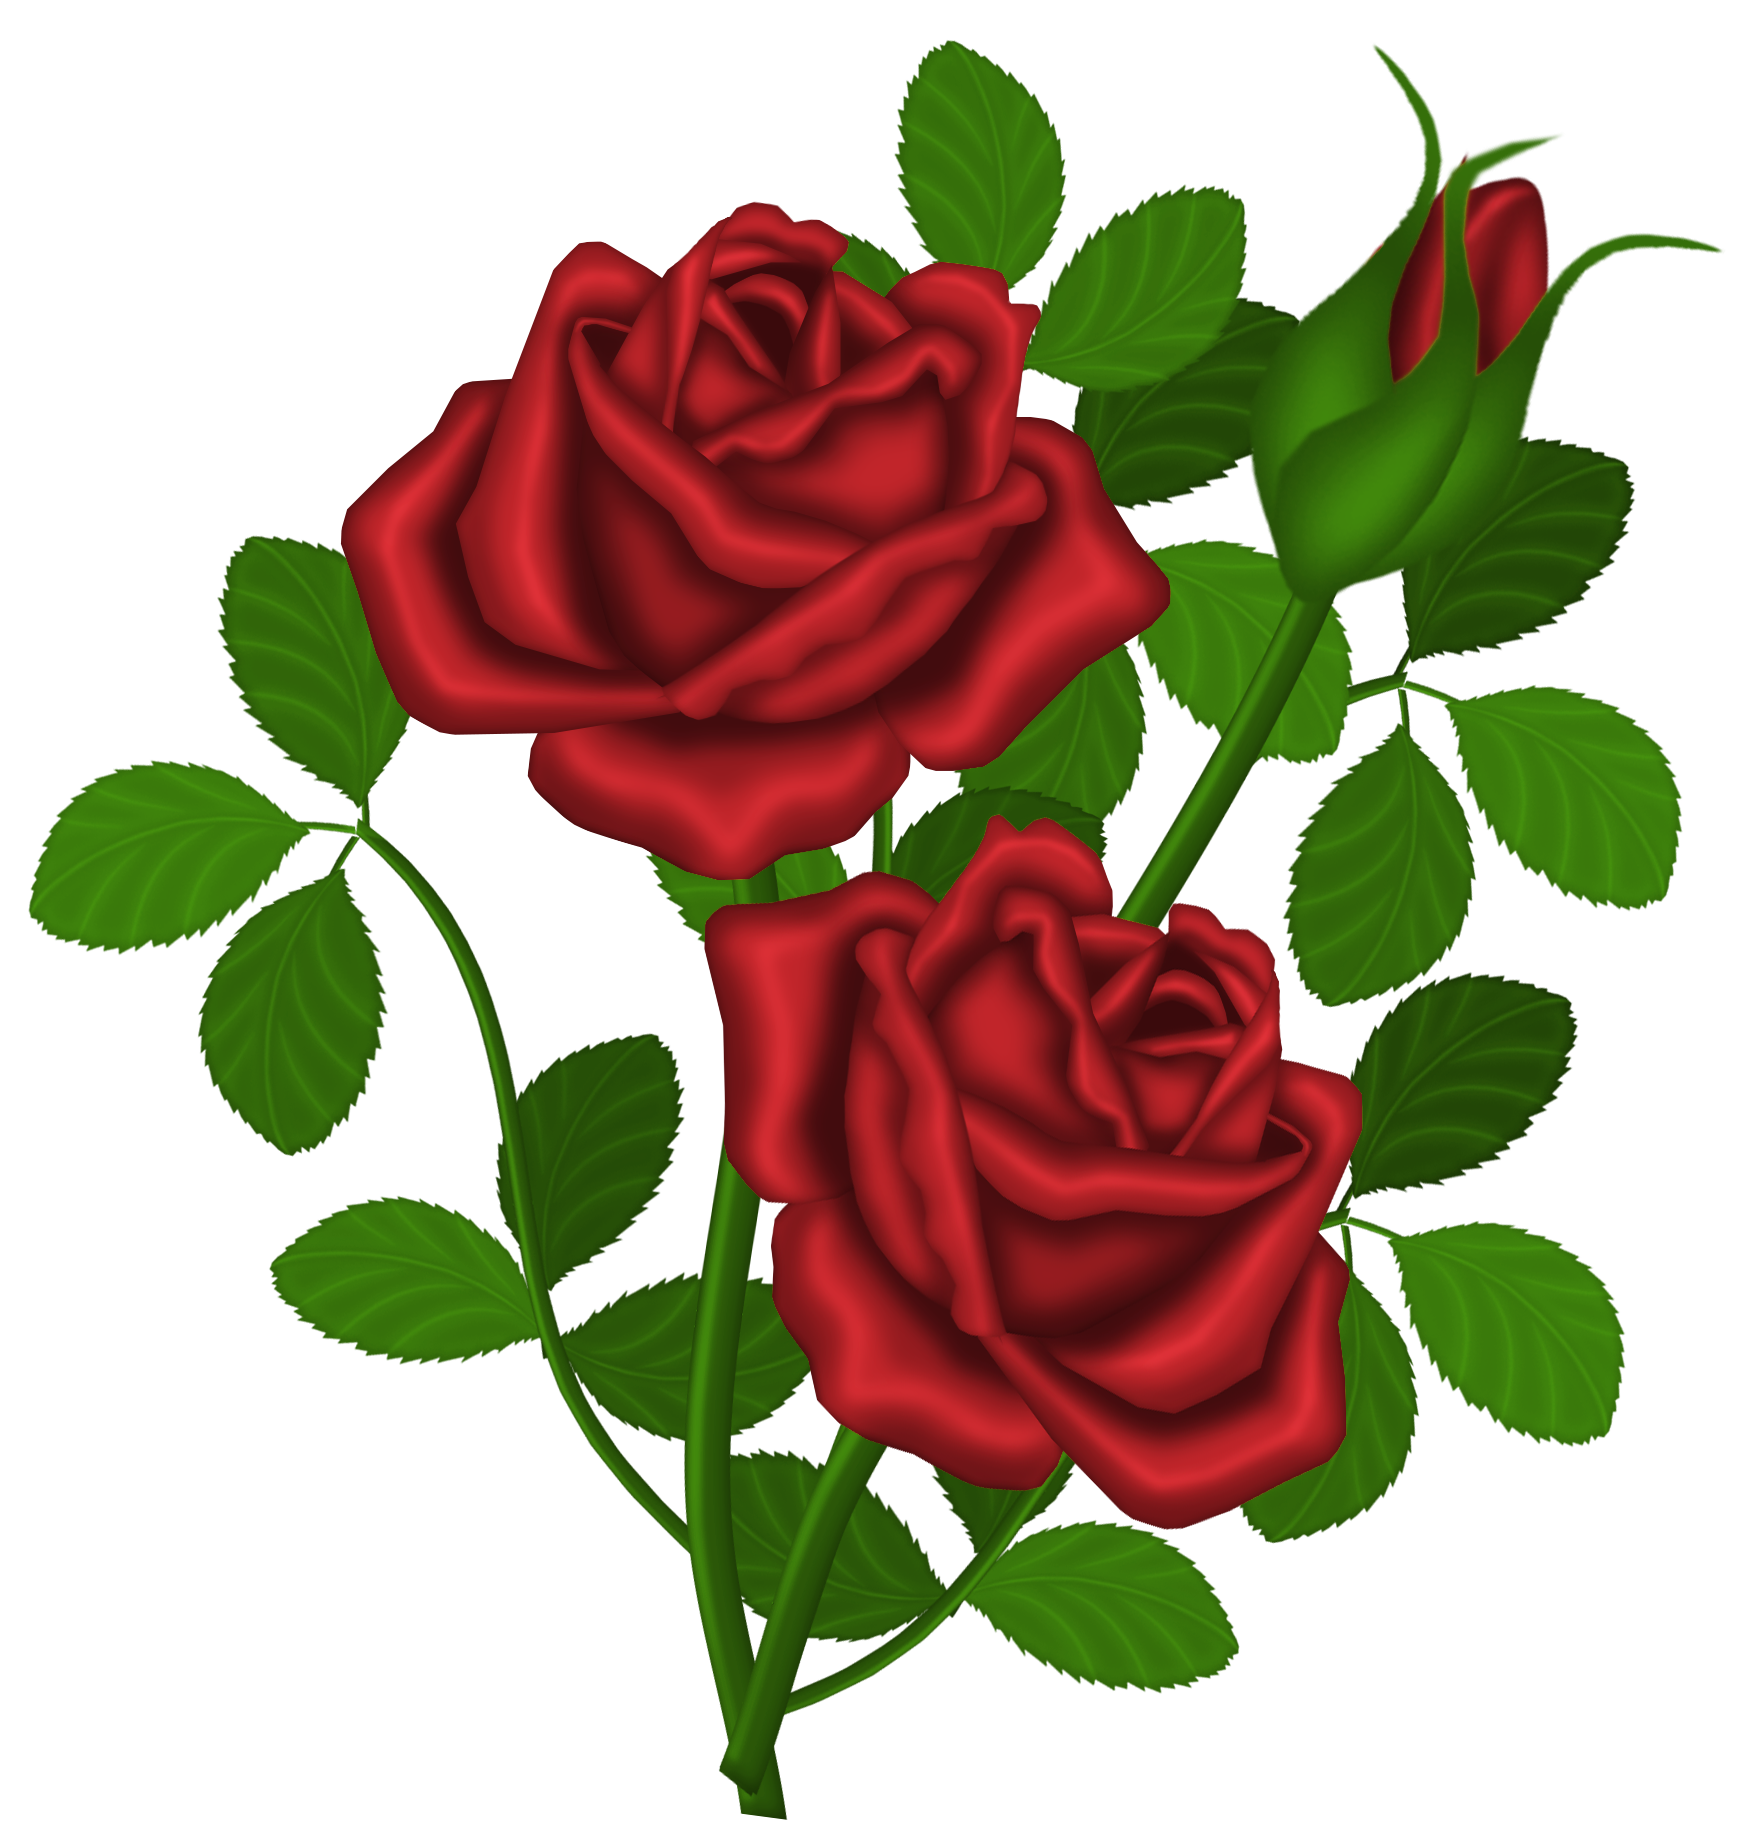 Rose clipart cross. Bouquet at getdrawings com